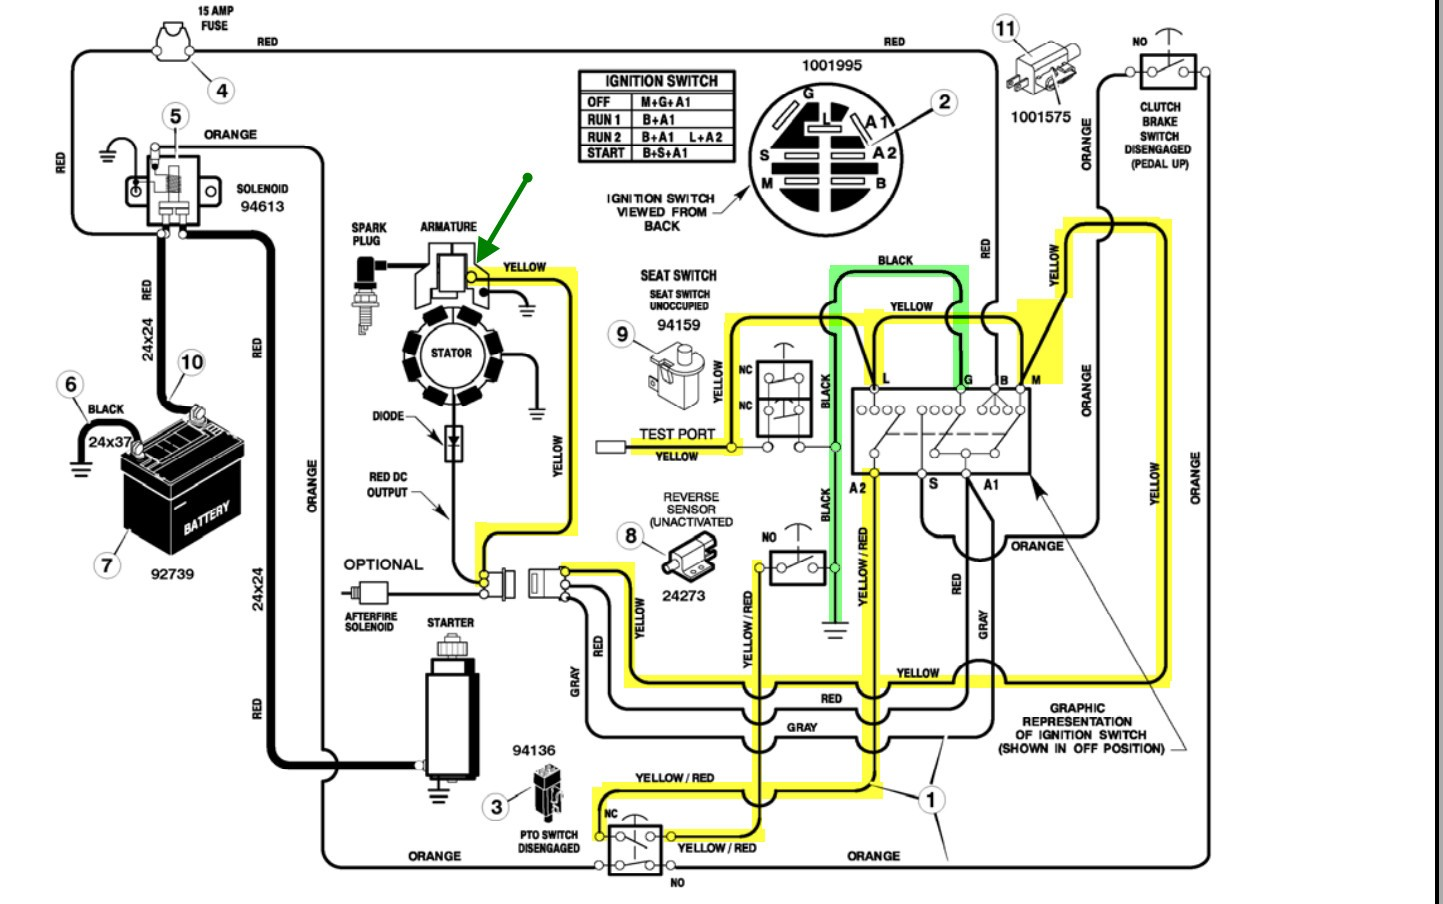 Wiring Diagram Briggs And Stratton 18 Hp Opposed Twin Best 20 1